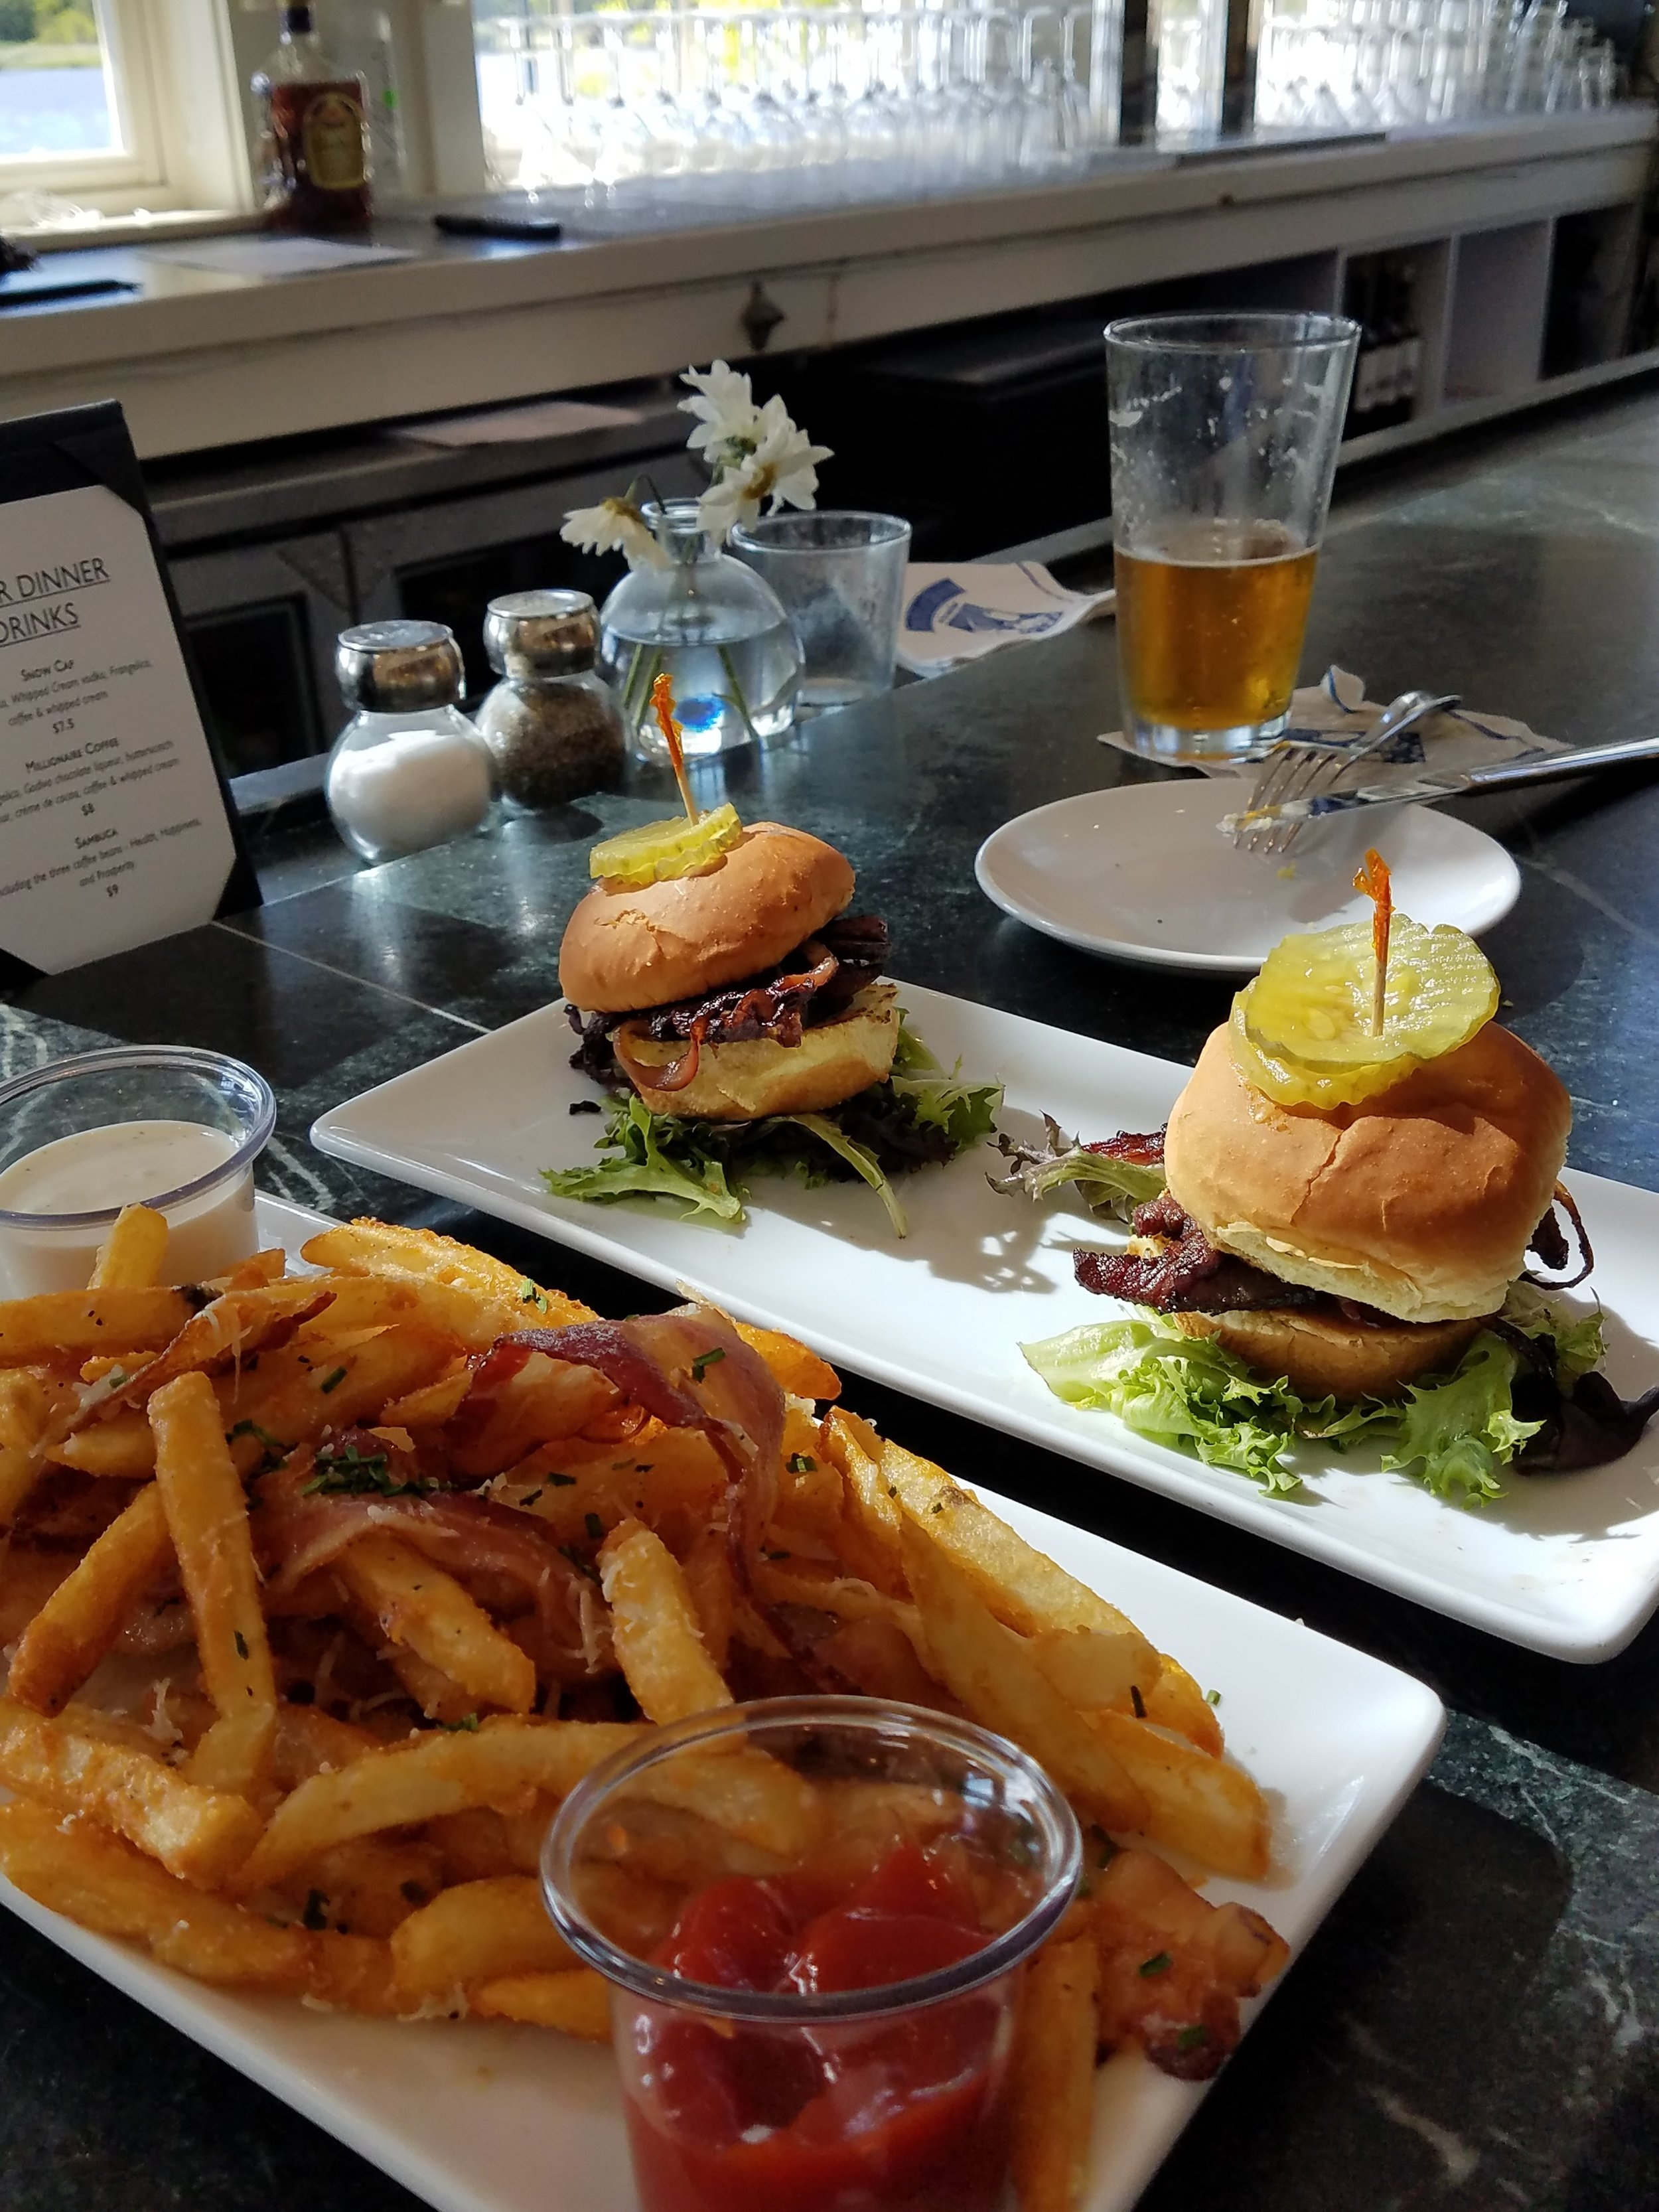 We don't eat much while in transit so this food tasted soooo good. The Pilot House on the Cape Fear River is the place to go for truffle fries and brisket sliders.